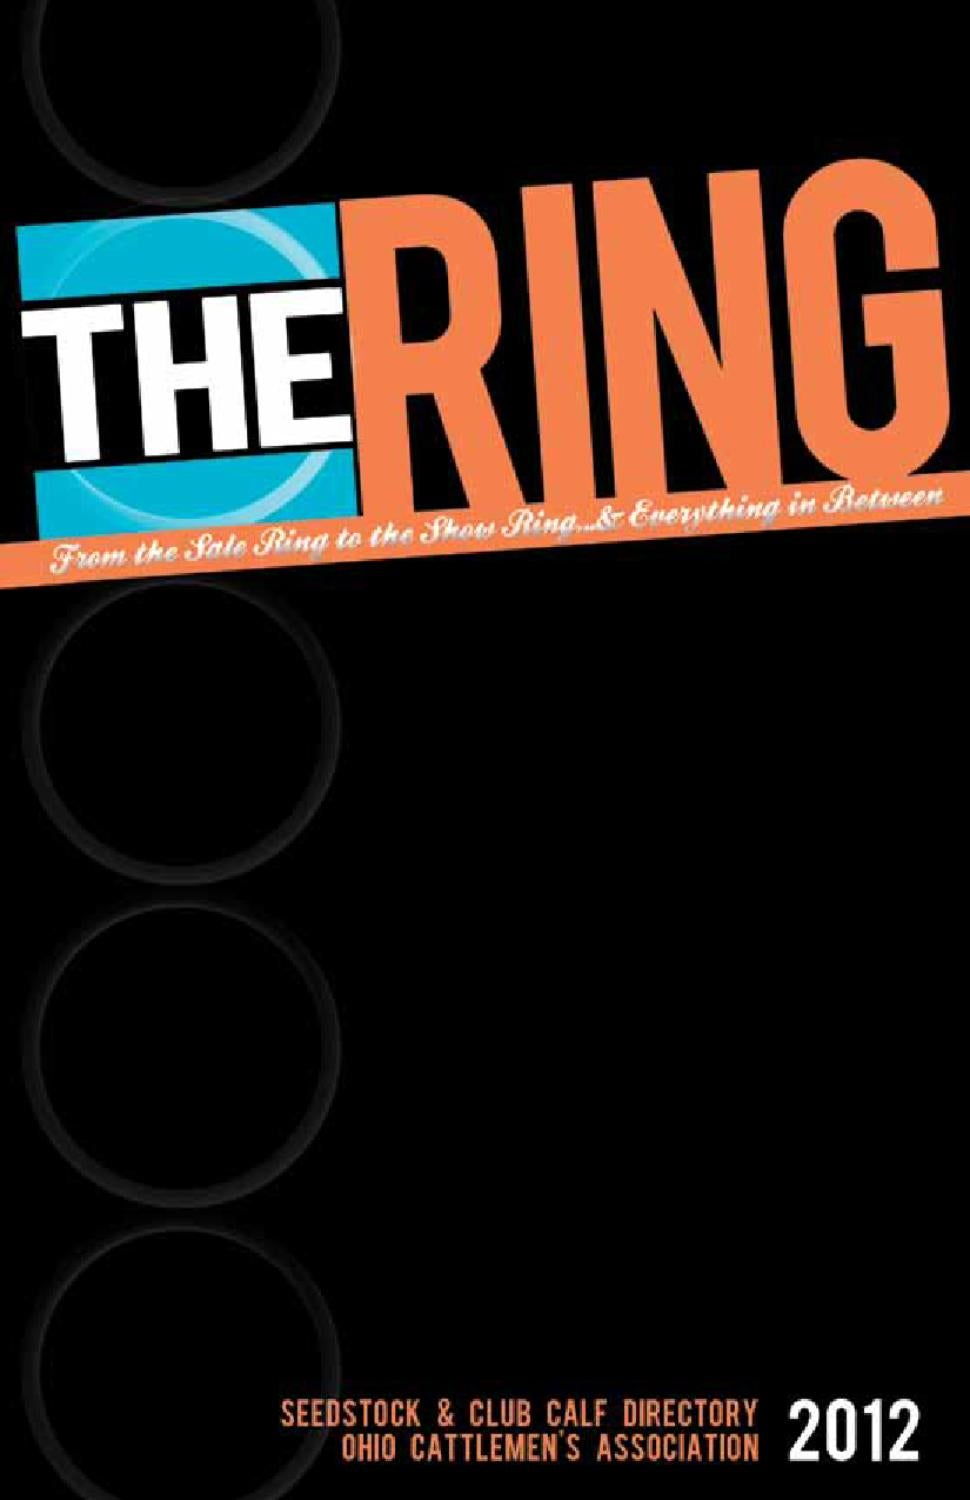 THE RING 2016 by Ohio Cattlemen\u0027s Association - issuu